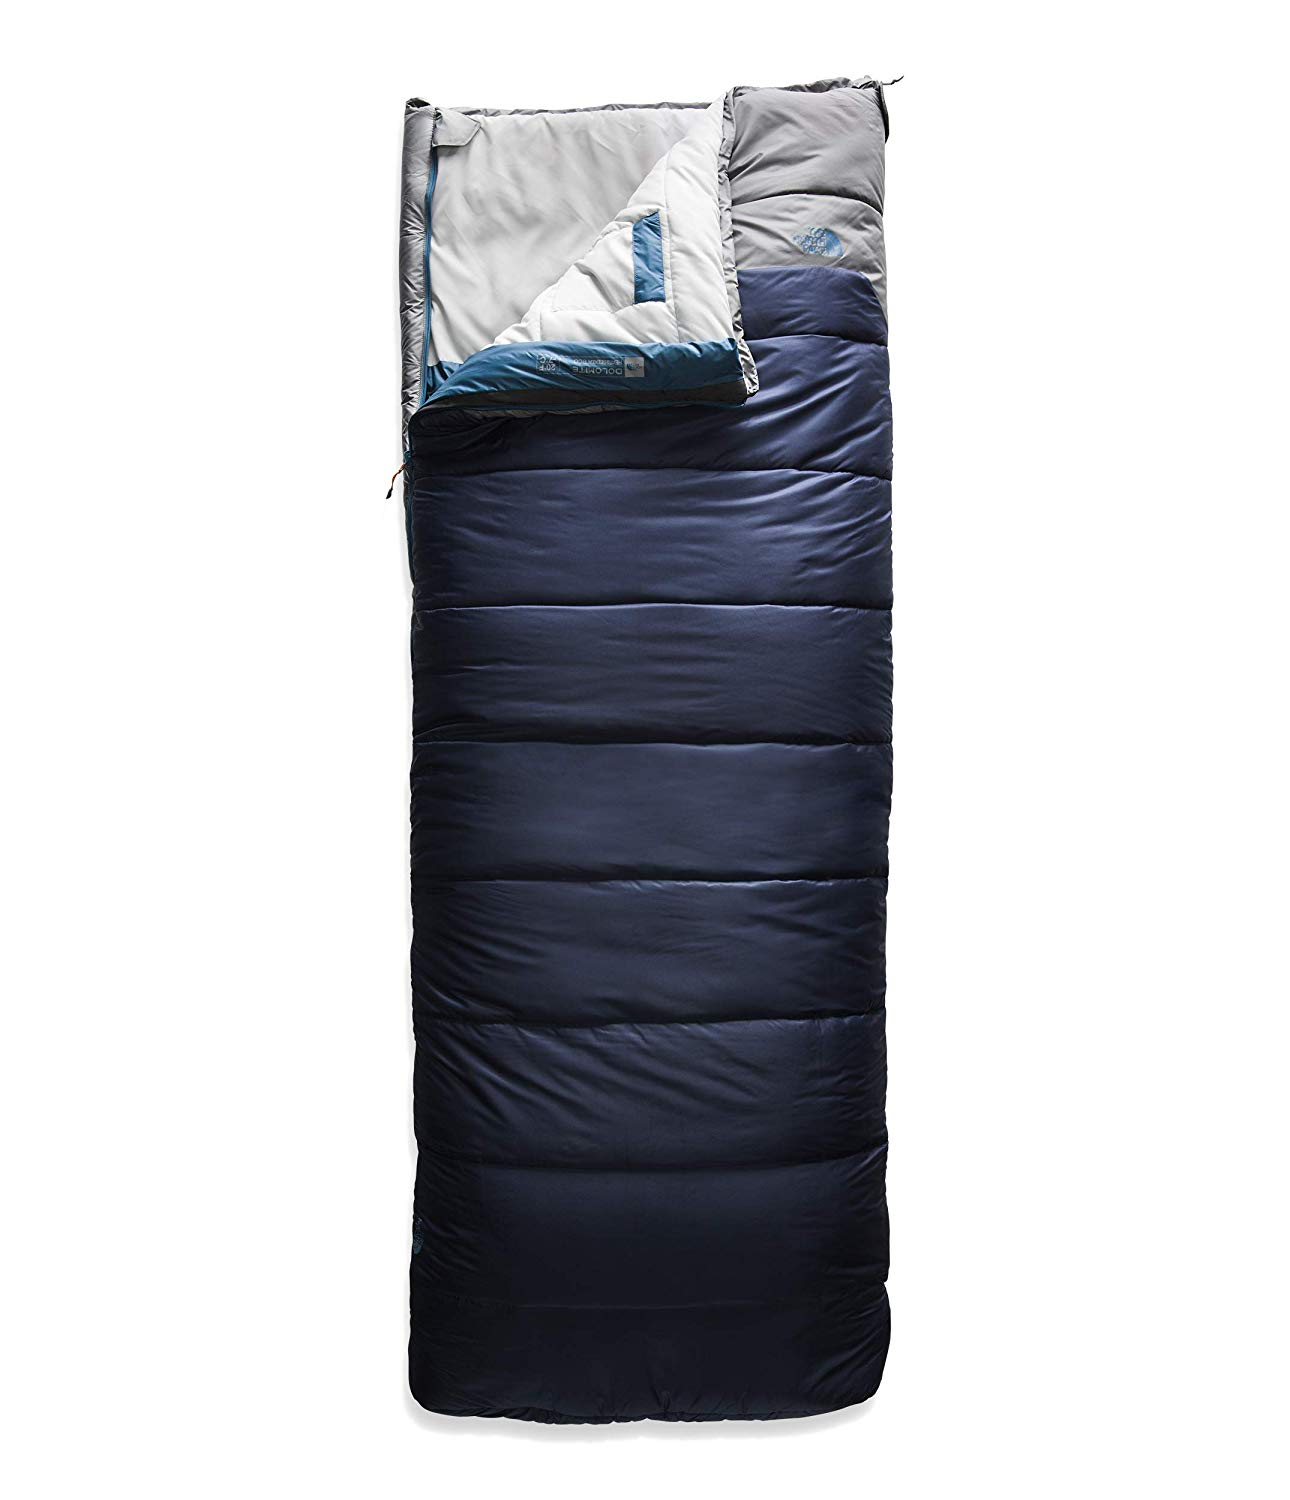 An image of Dolomite 20 Degree Polyester Taffeta Sleeping Bag from The North Face